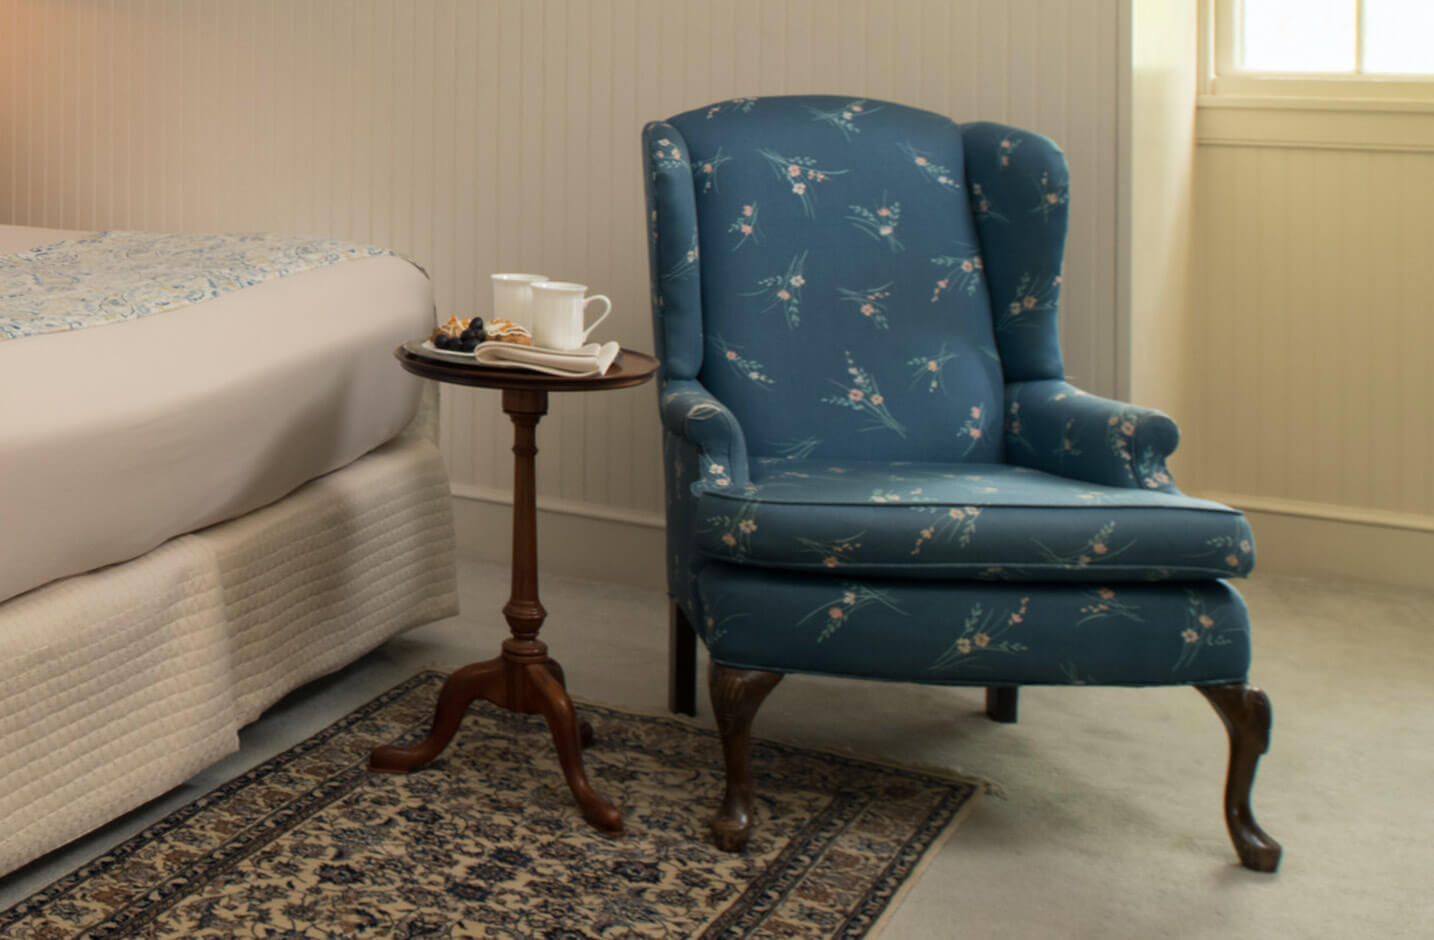 Ringgold Room reading chair with side table at our Eastern Shore B&B